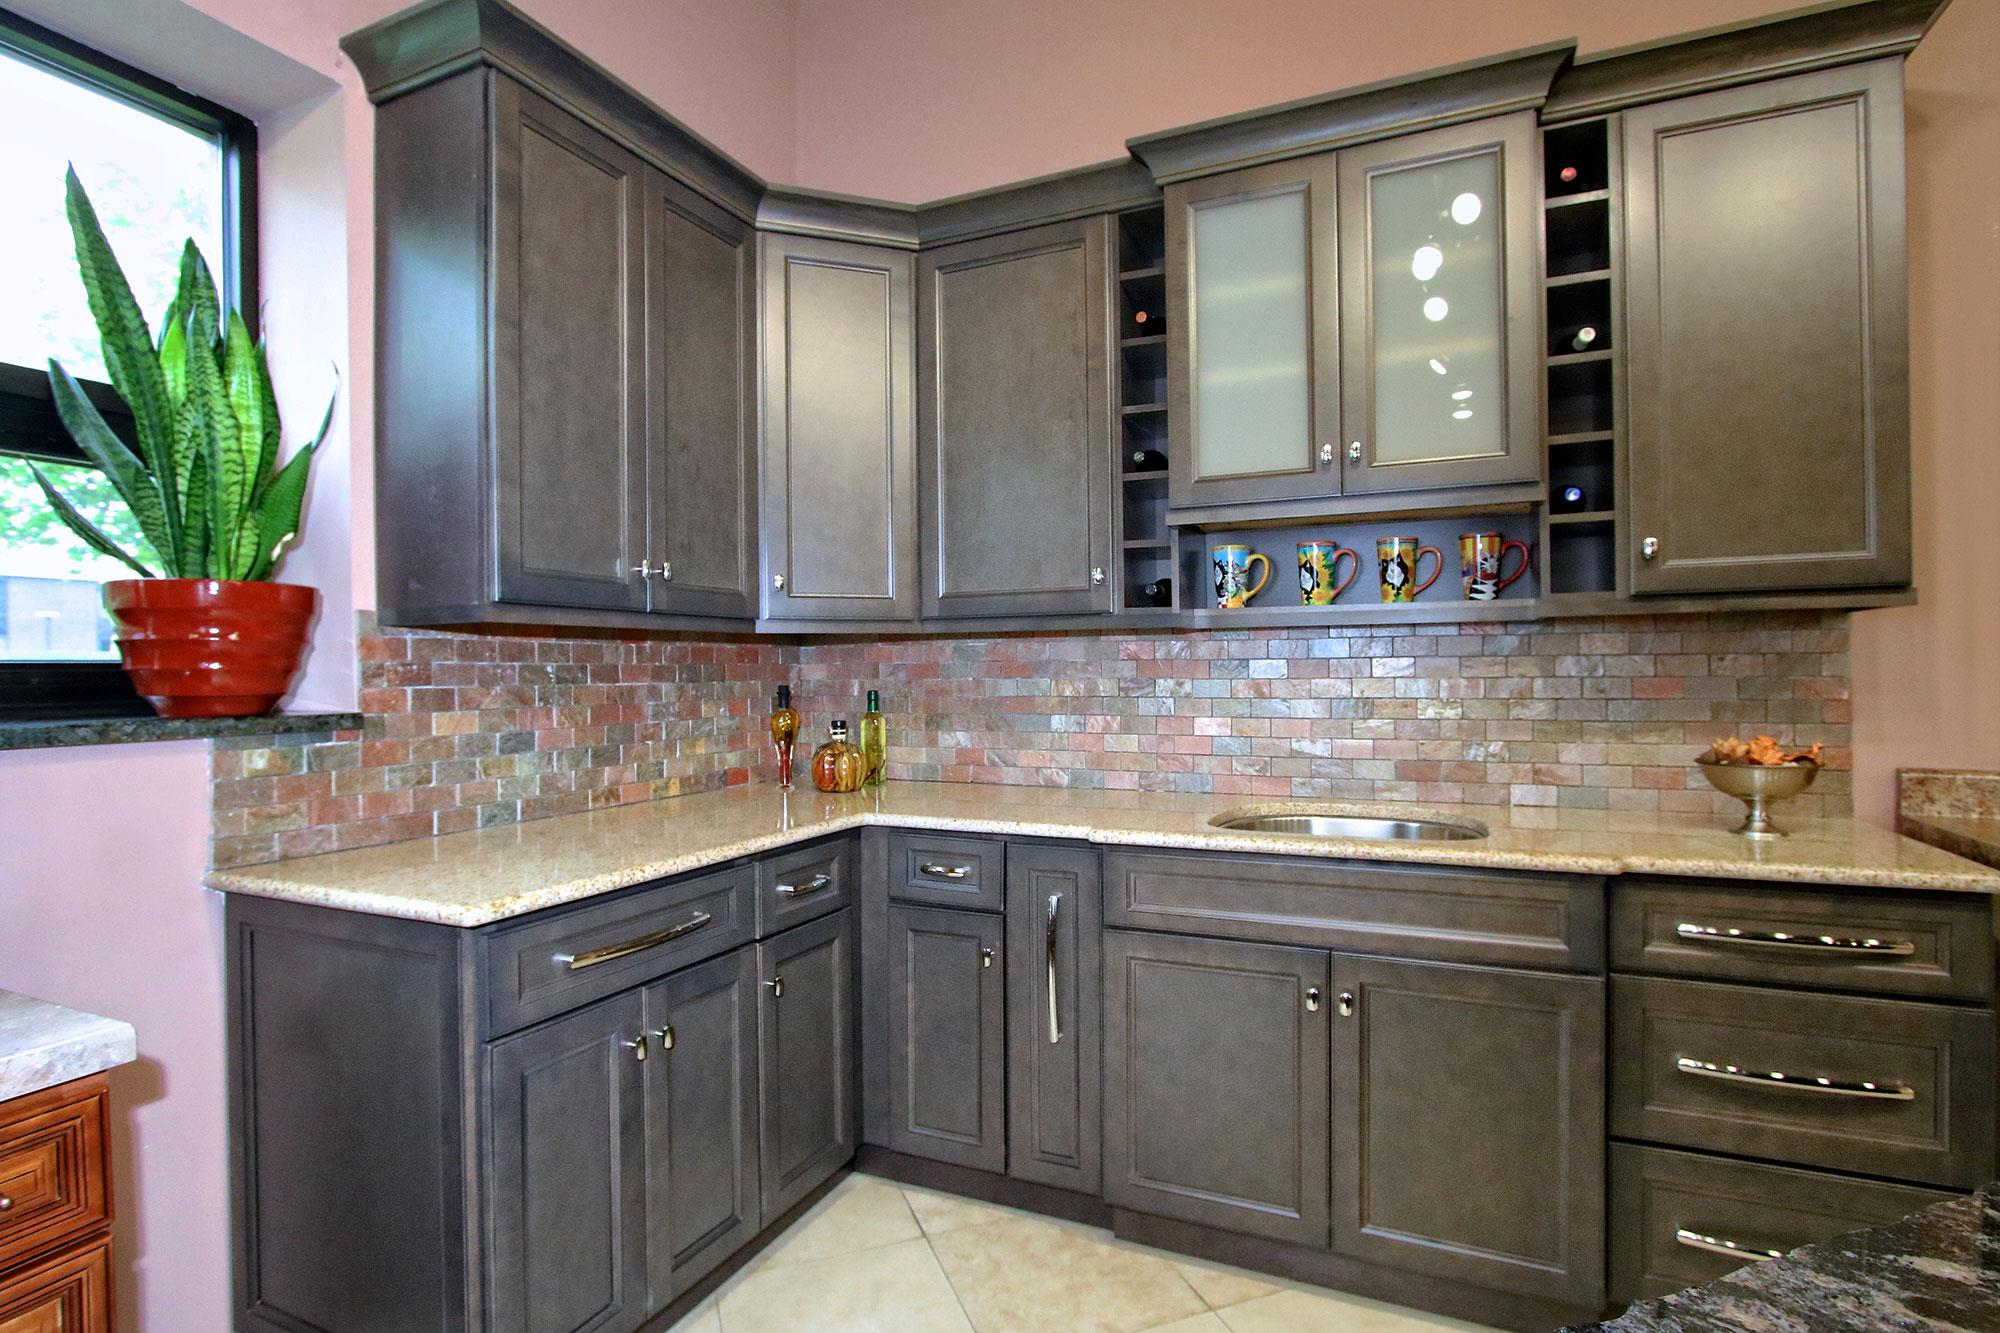 With Davill Kitchens, You Know Your Buying High Quality Cabinets